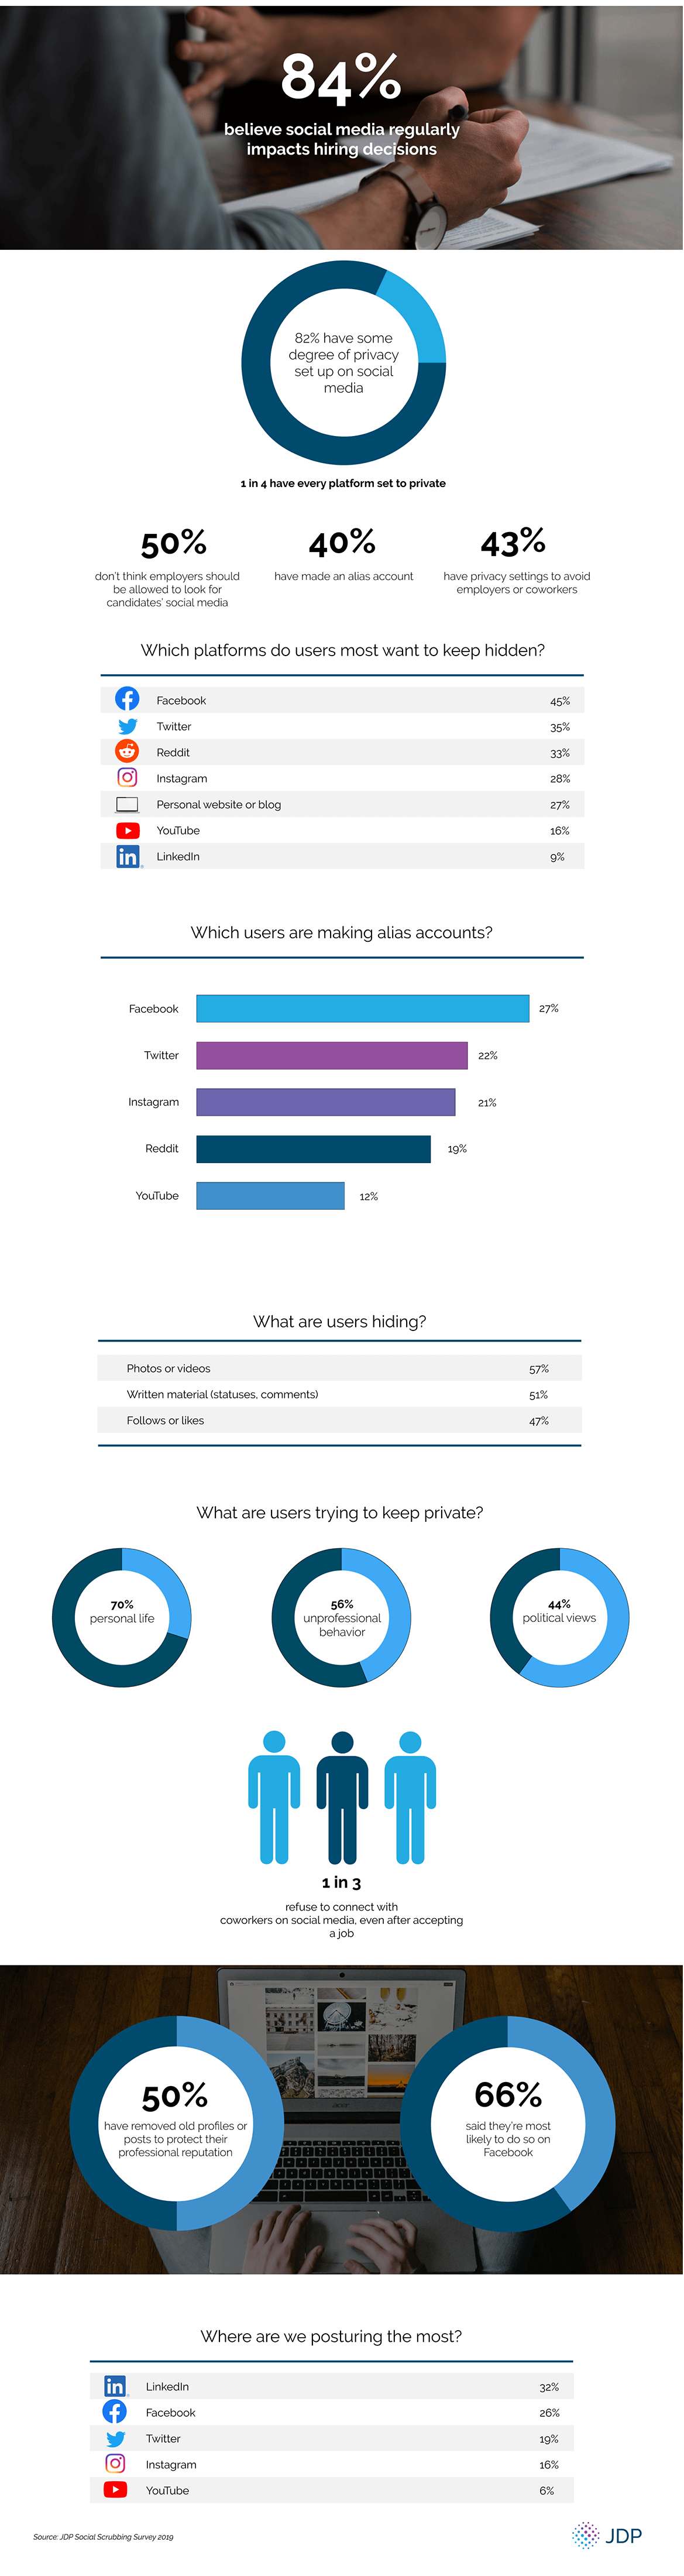 Infographic looks at what people are looking to hide online